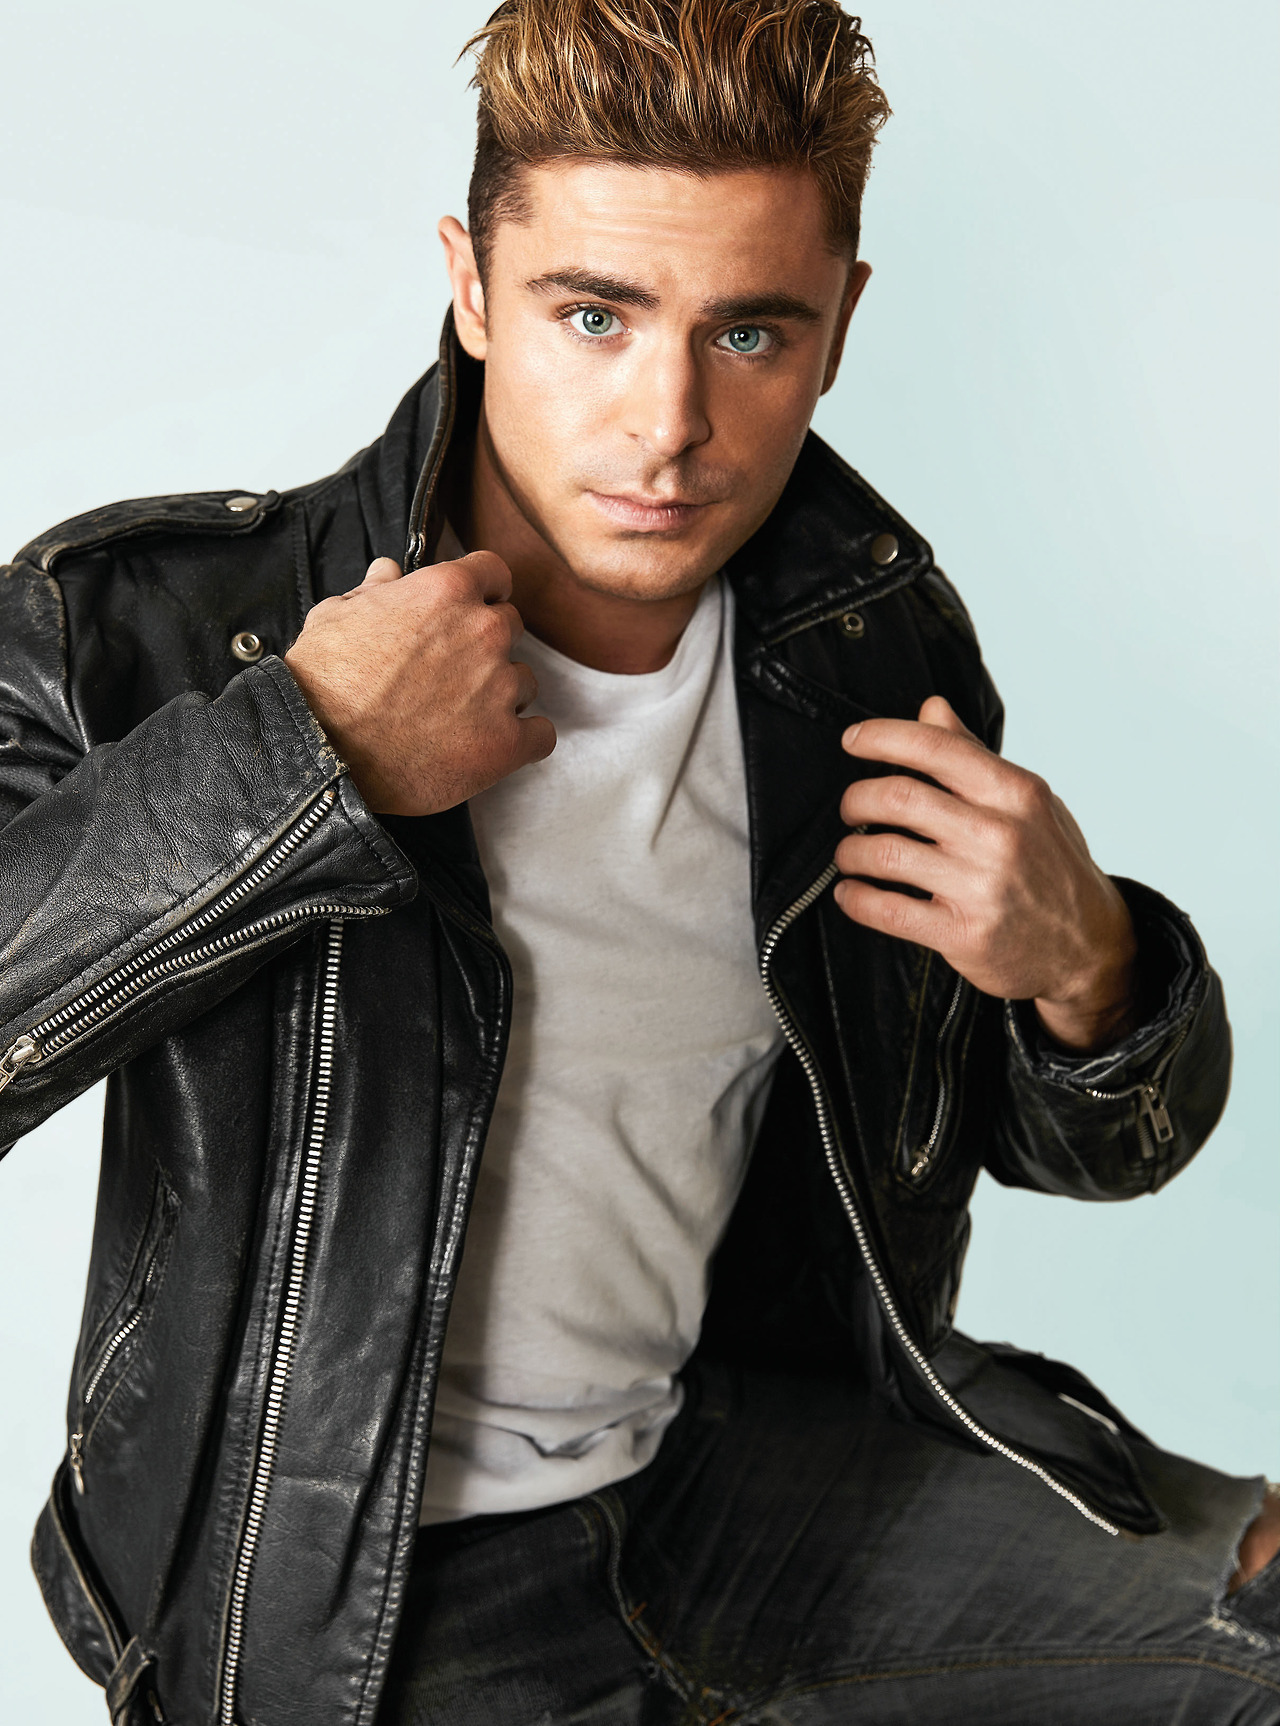 Teen Idols 4 You   Pictures of Zac Efron in General Pictures  Page 1 Zac Efron   zac efron 1514177326 jpg